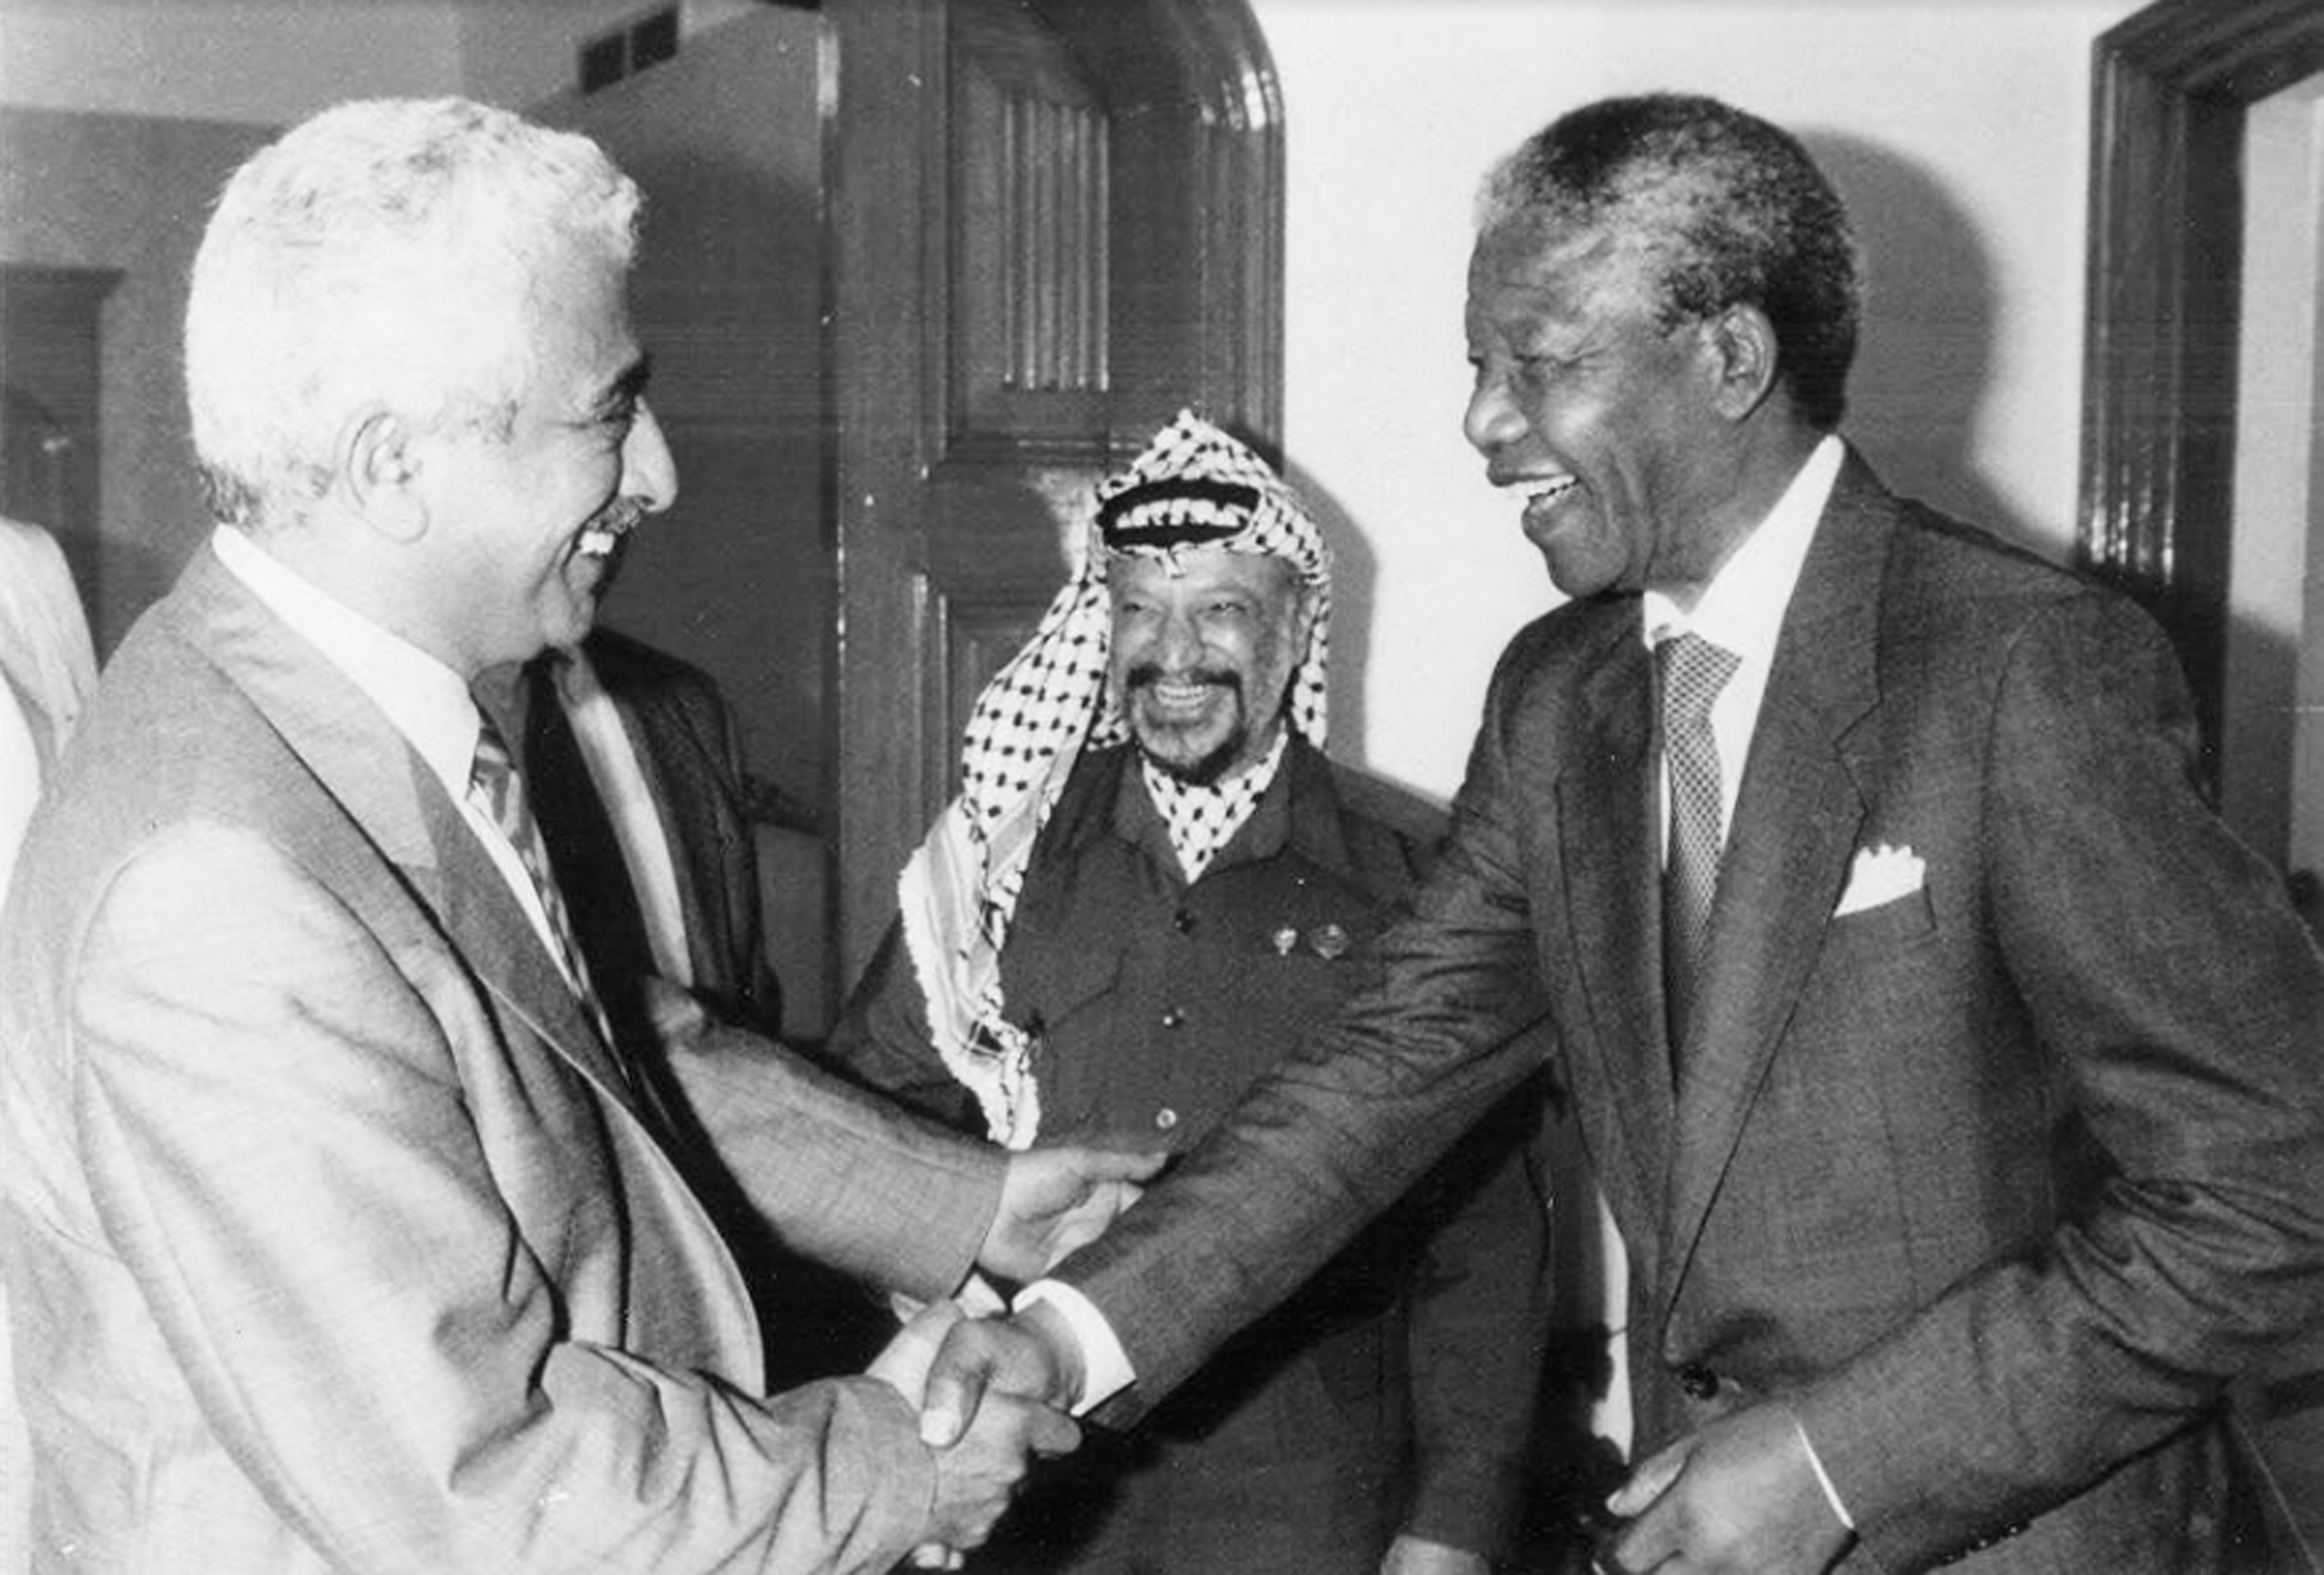 From left to right: My great-uncle Suileyman Najjab, Yasser Arafat, Nelson Mandela